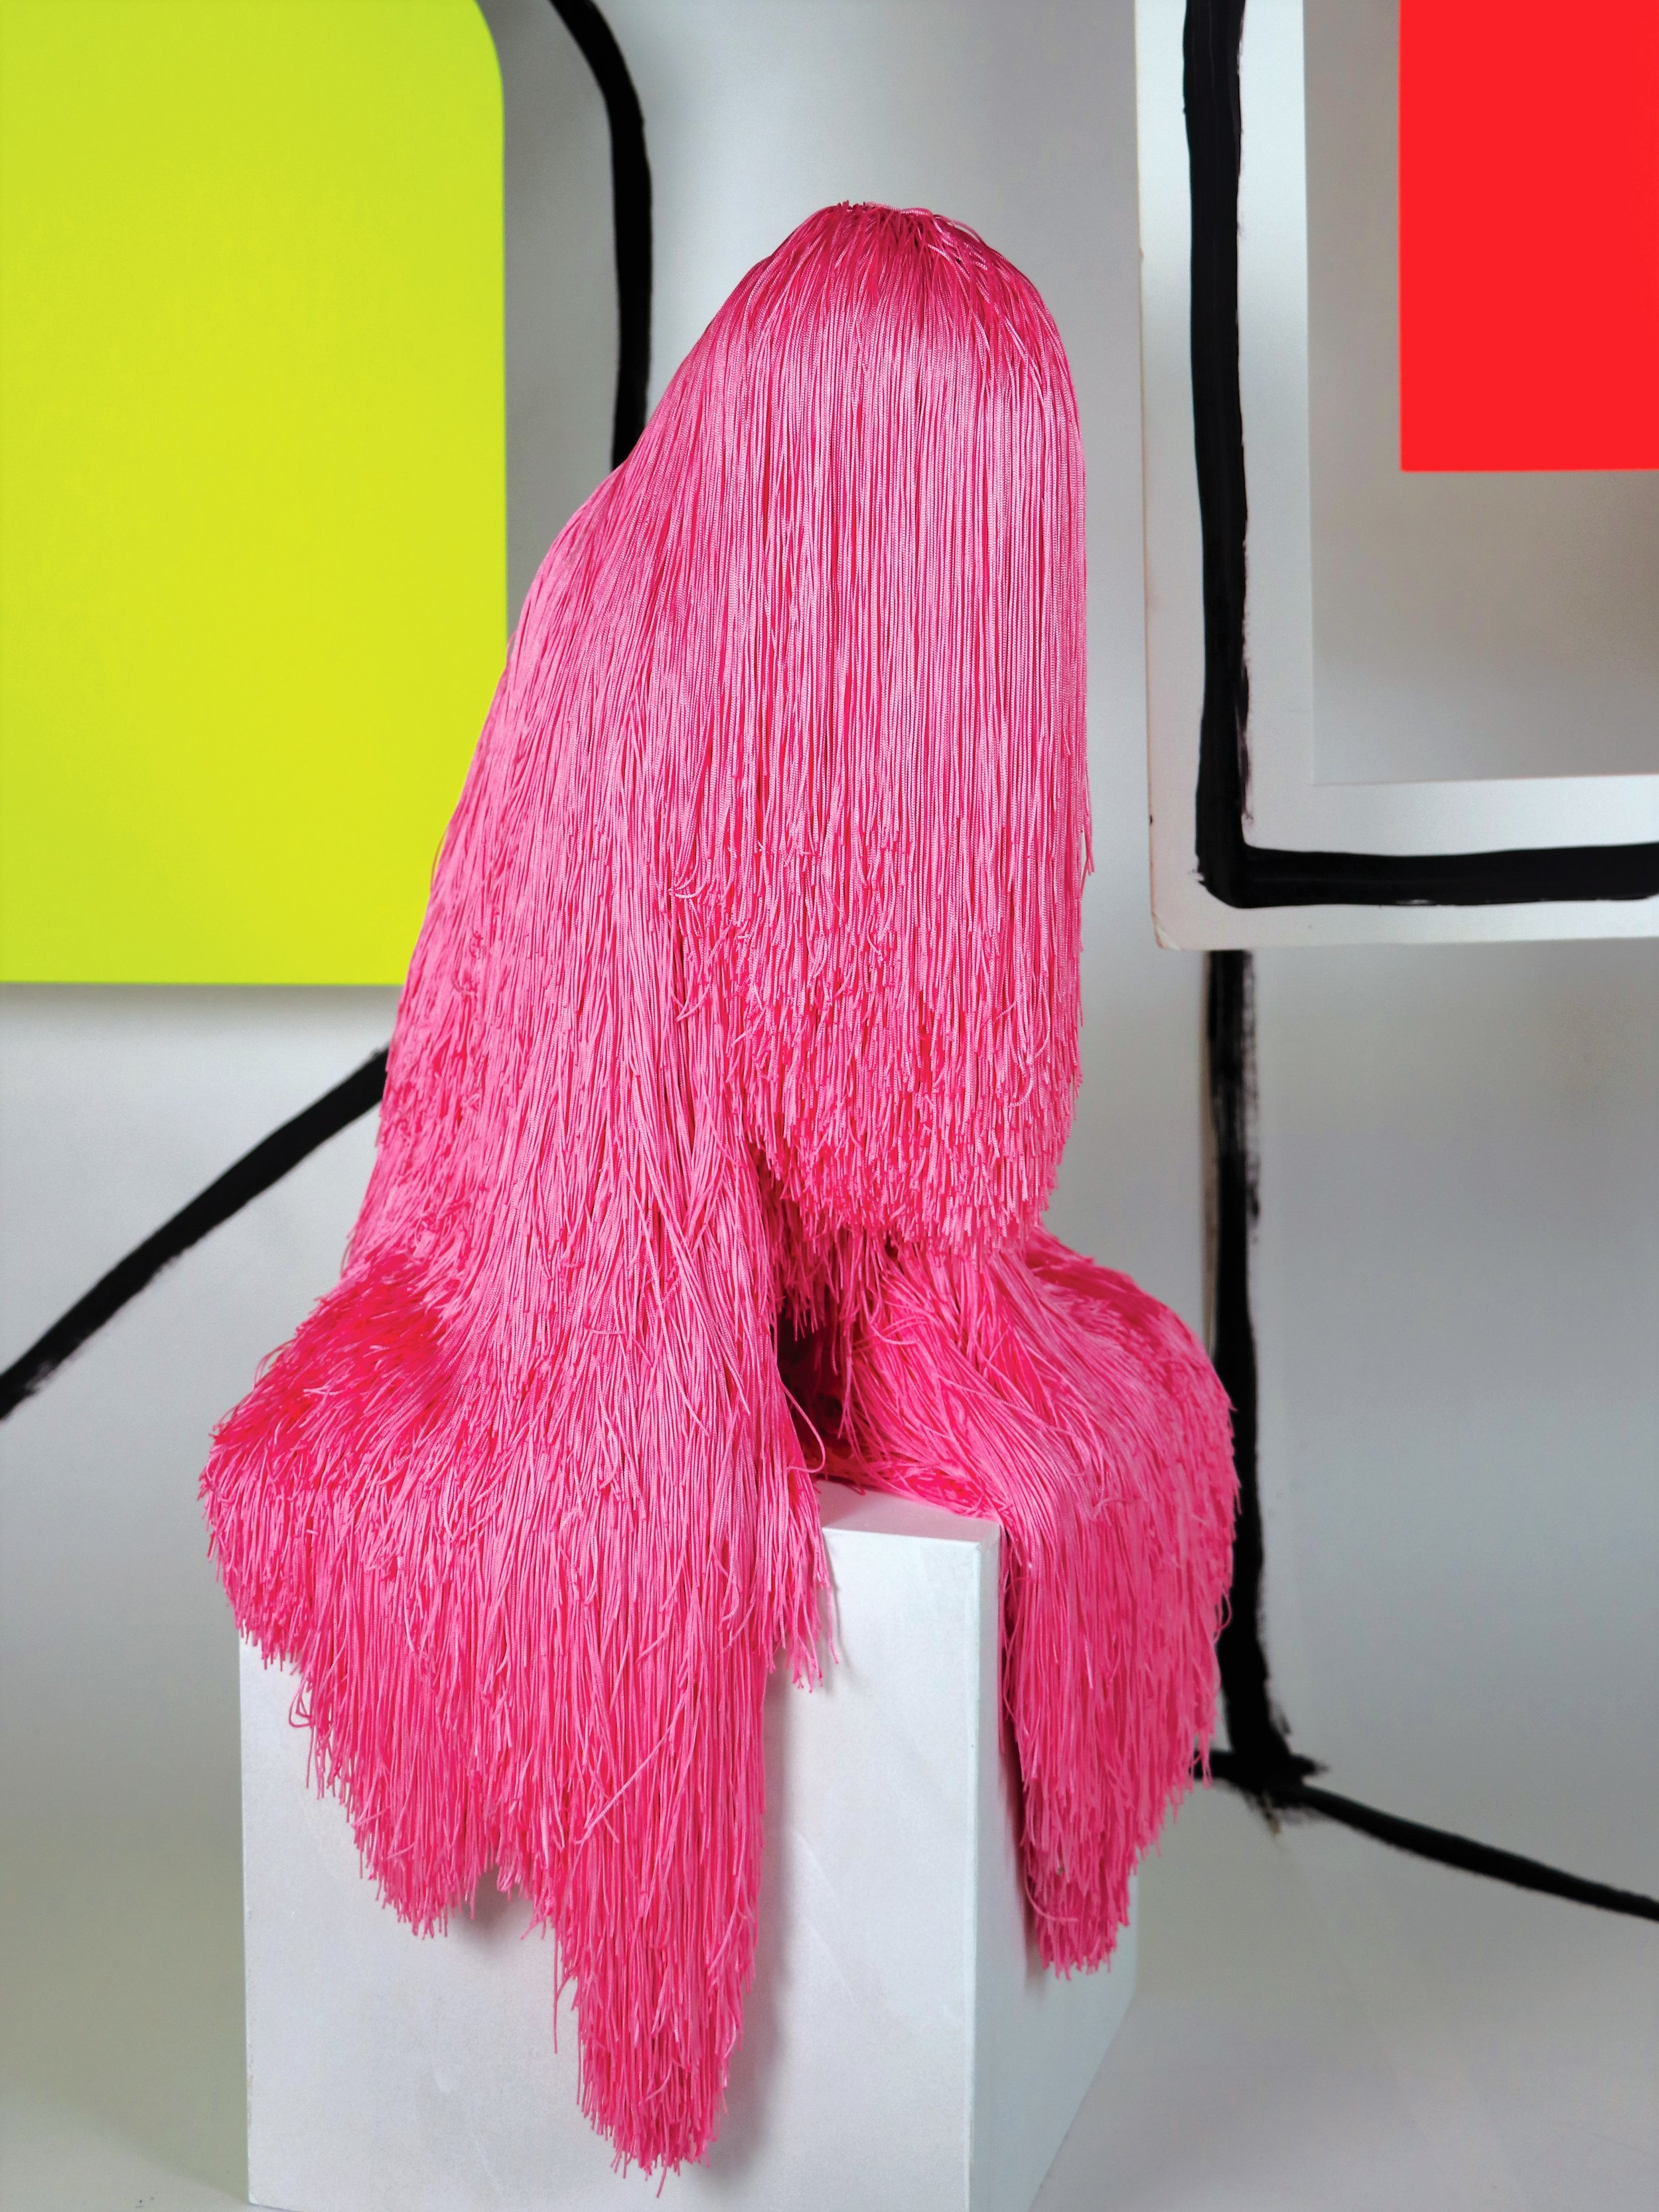 Troy Emery,  pink lump,  2018,  polyrethane ,  polyester tassels, glue, pins. Styling and Photography by Annette Wagner